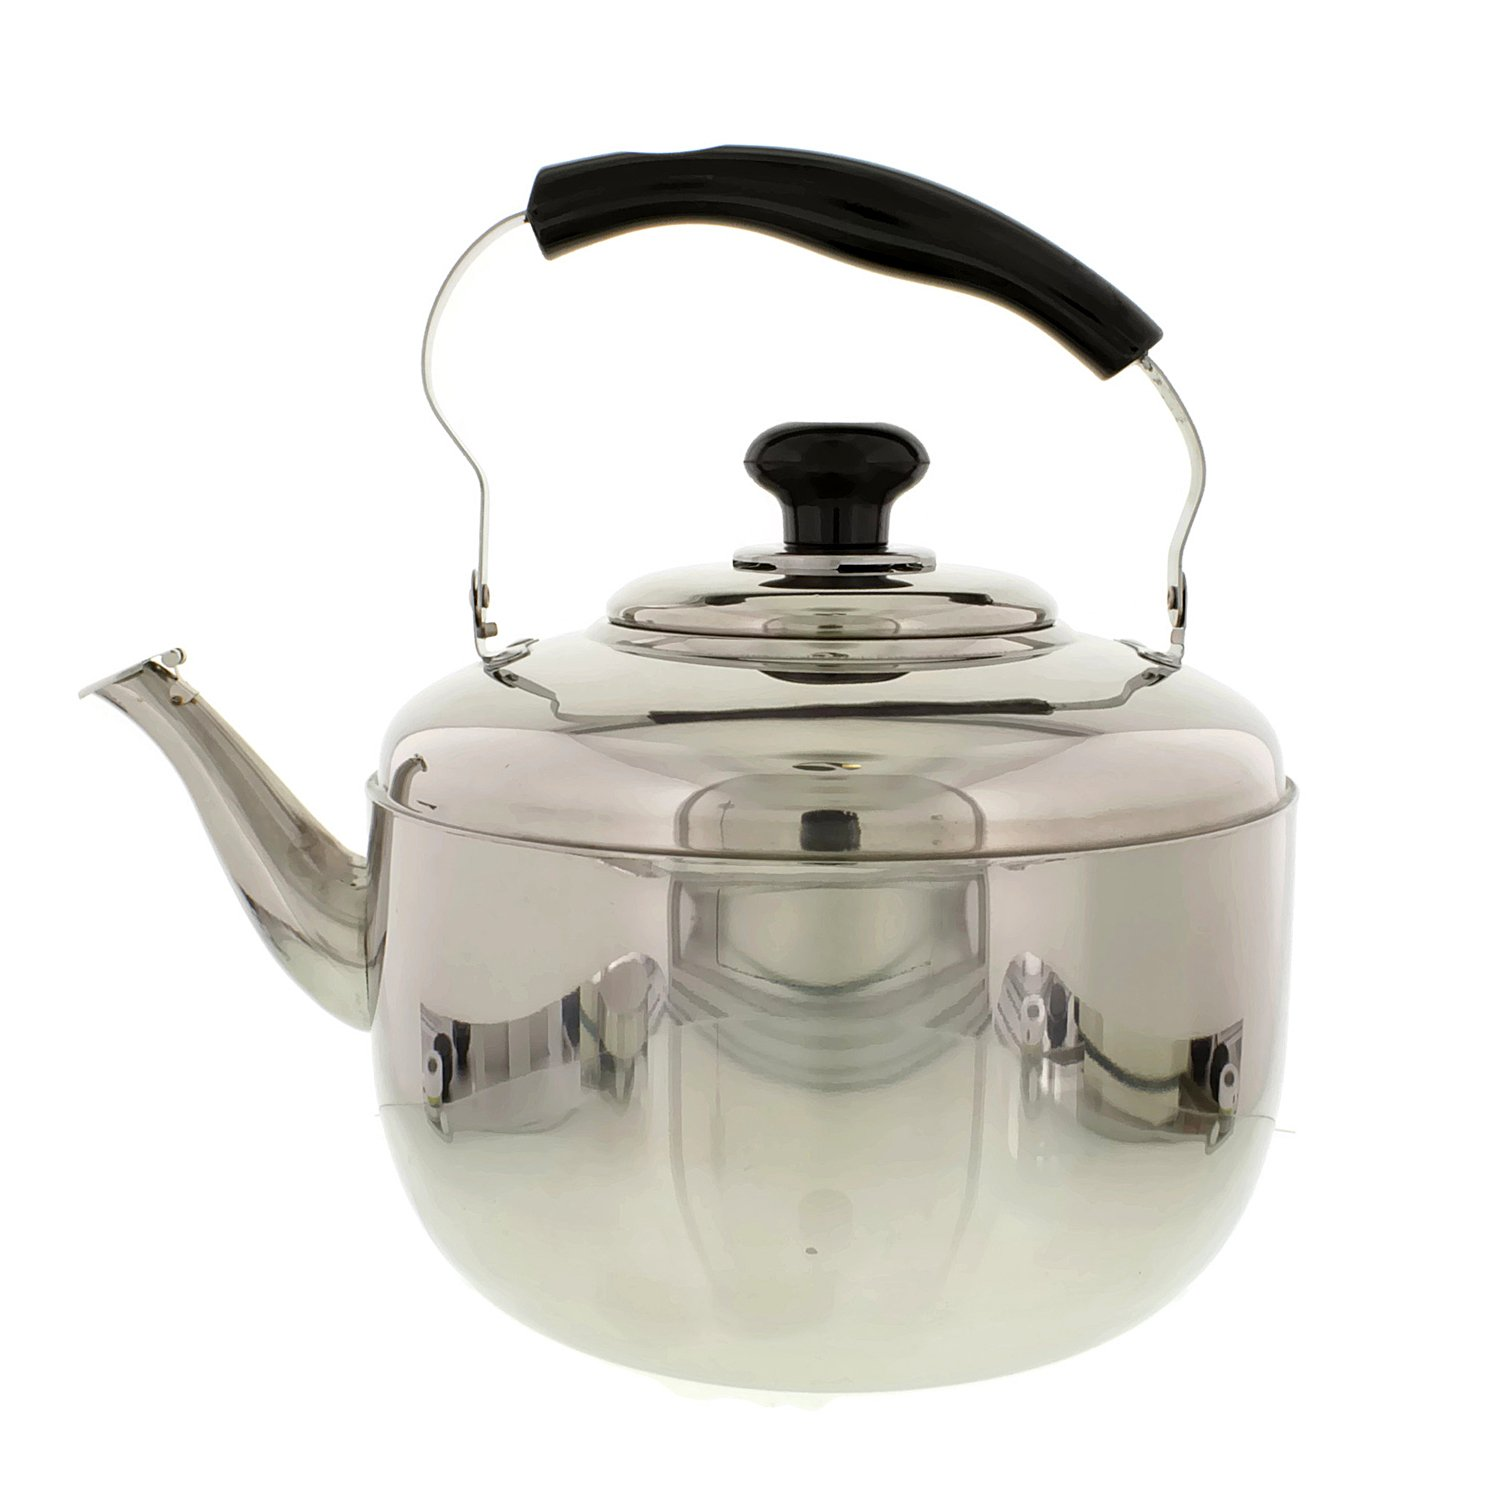 6.8L Stainless Steel Tea Kettle with Ergonomic Handle for Home or Restaurant Cheftor Large 7QT